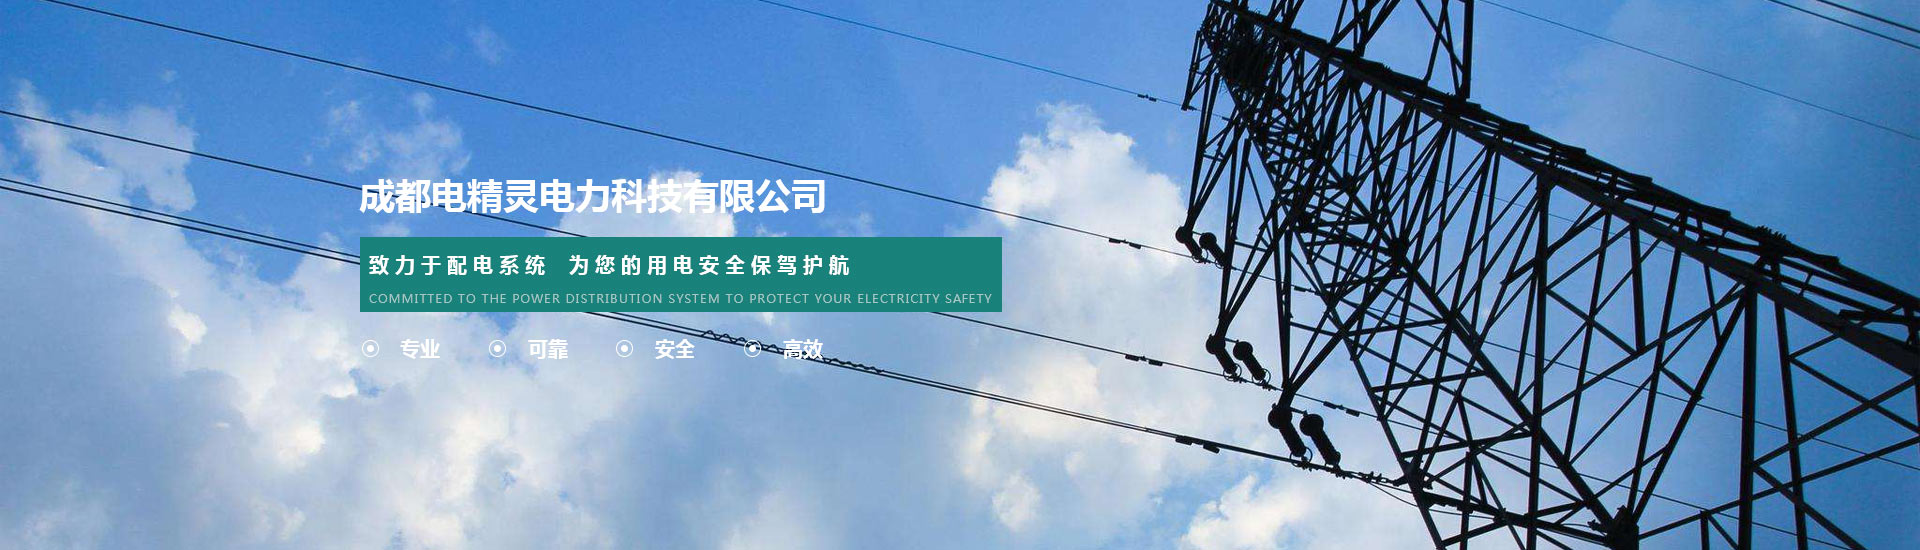 Sichuan Electric Power annual inspection pre test